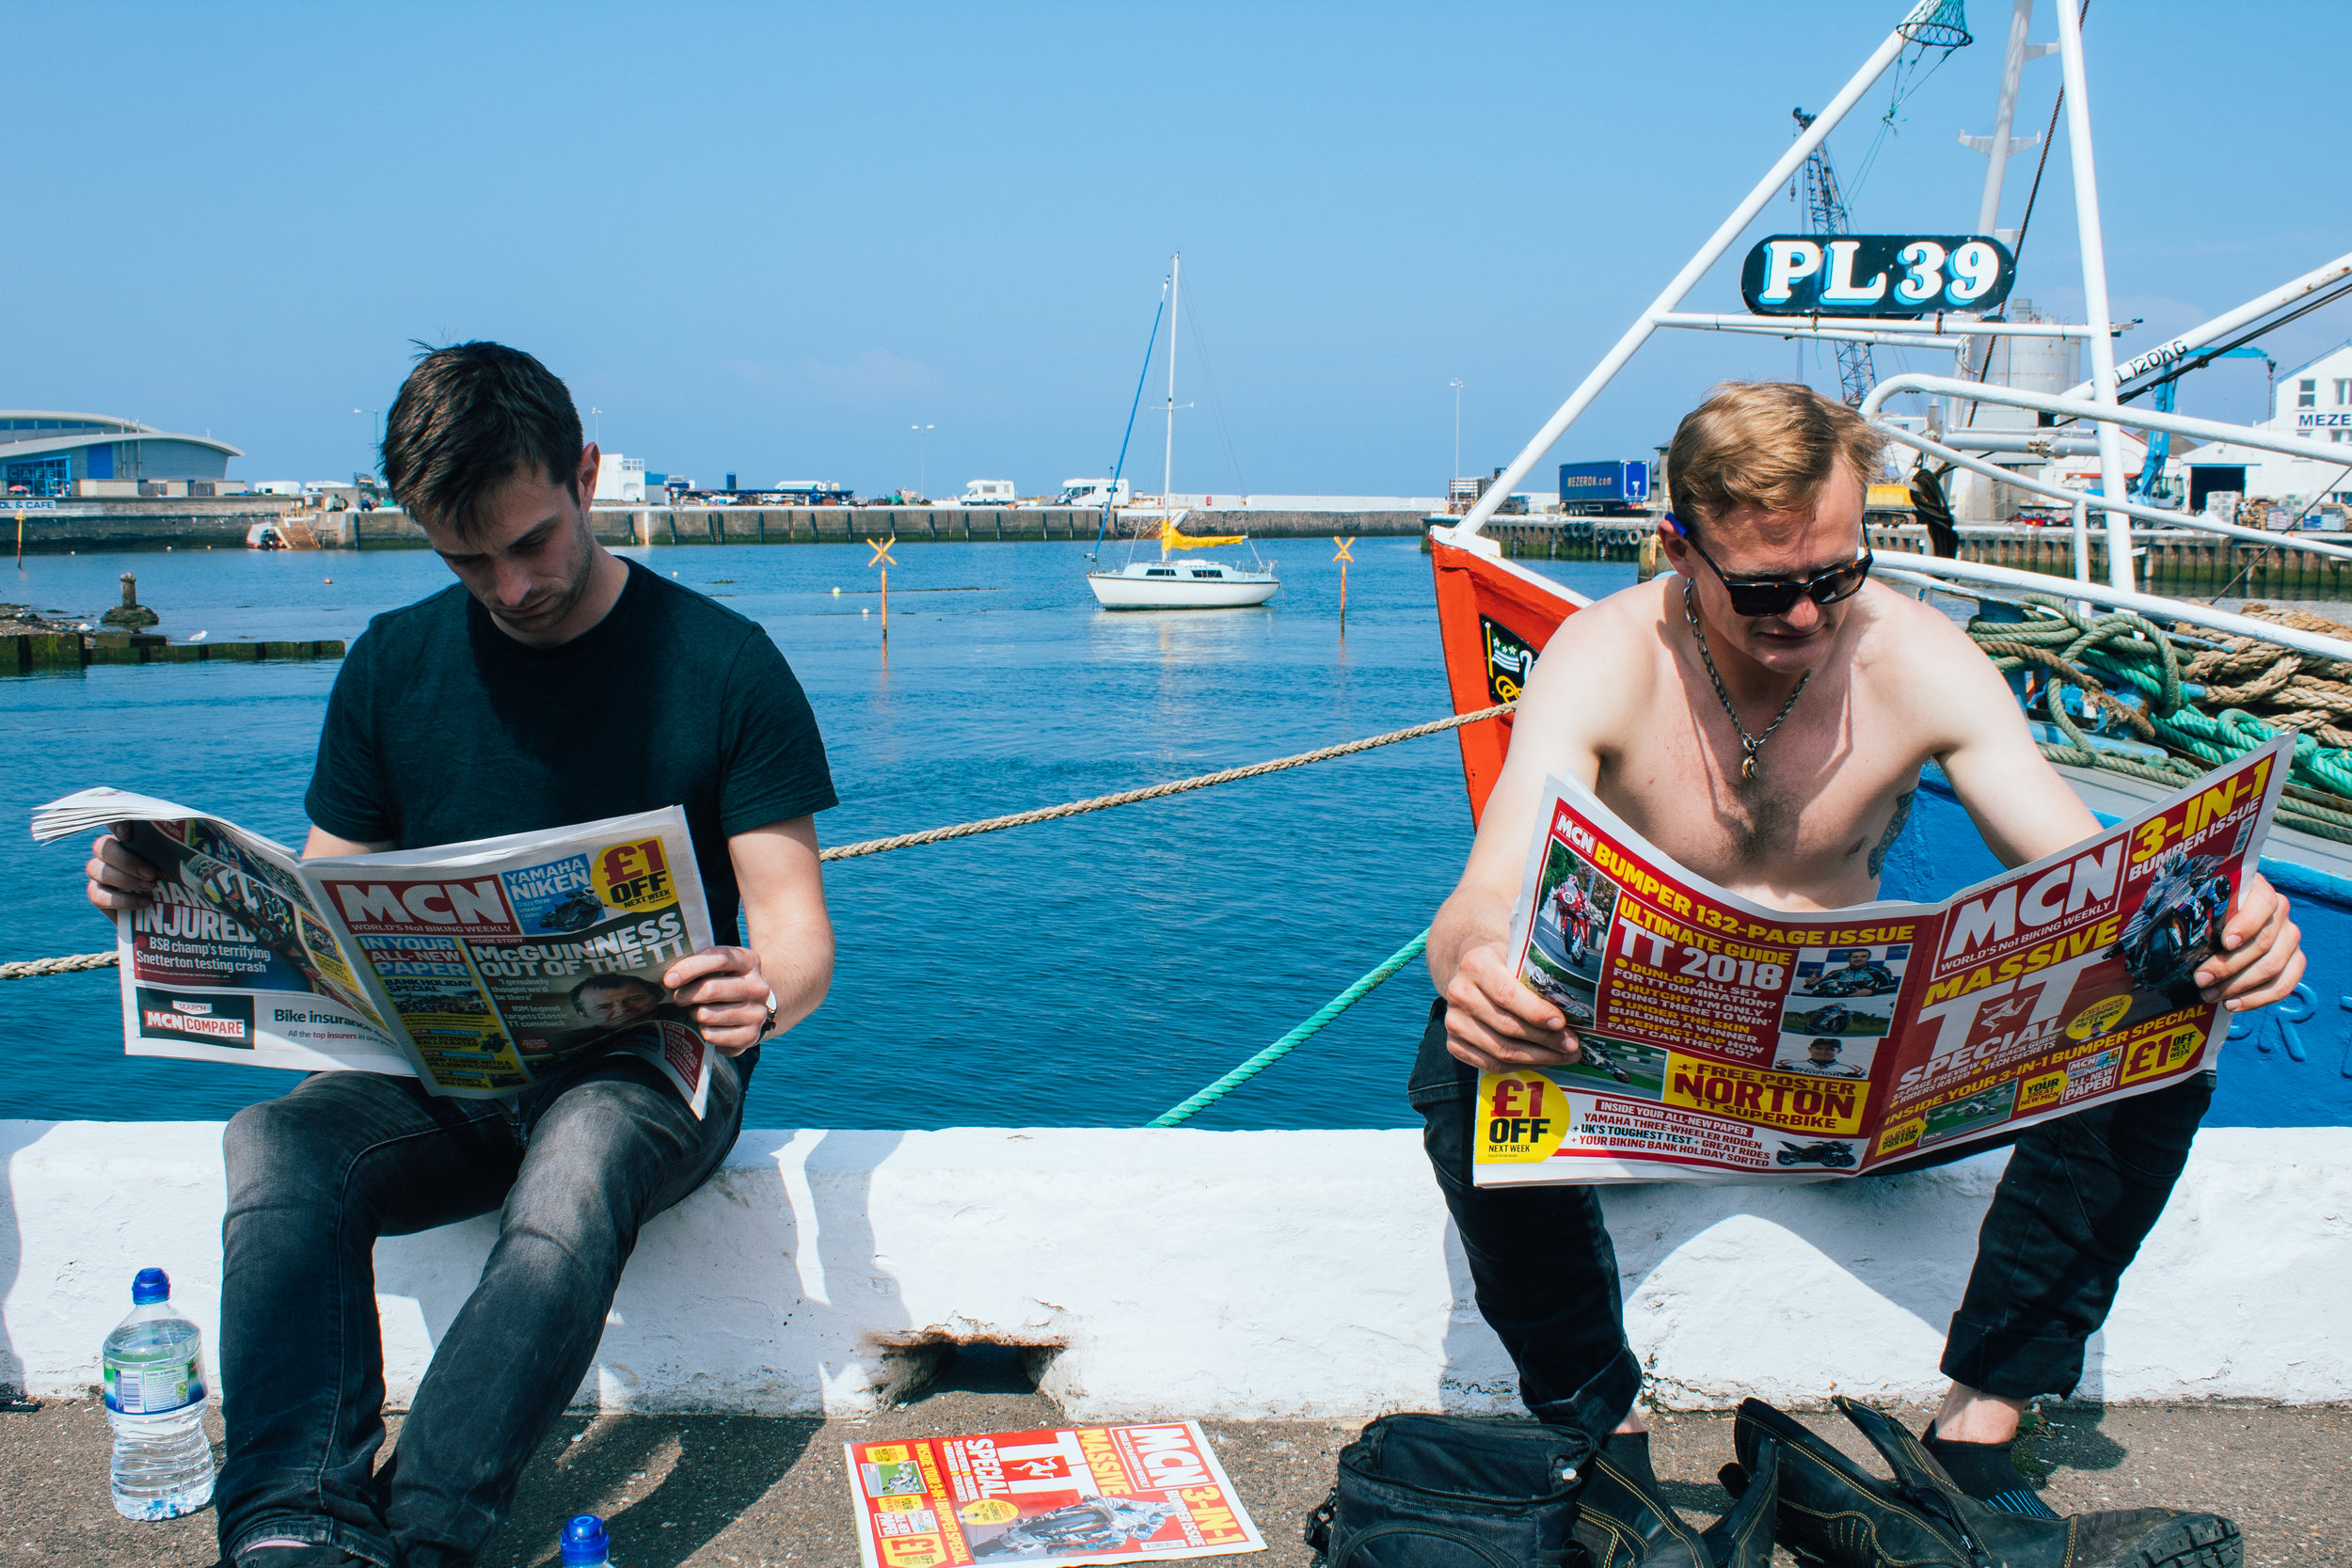 Catching up on the TT gossip in Ramsey Harbour